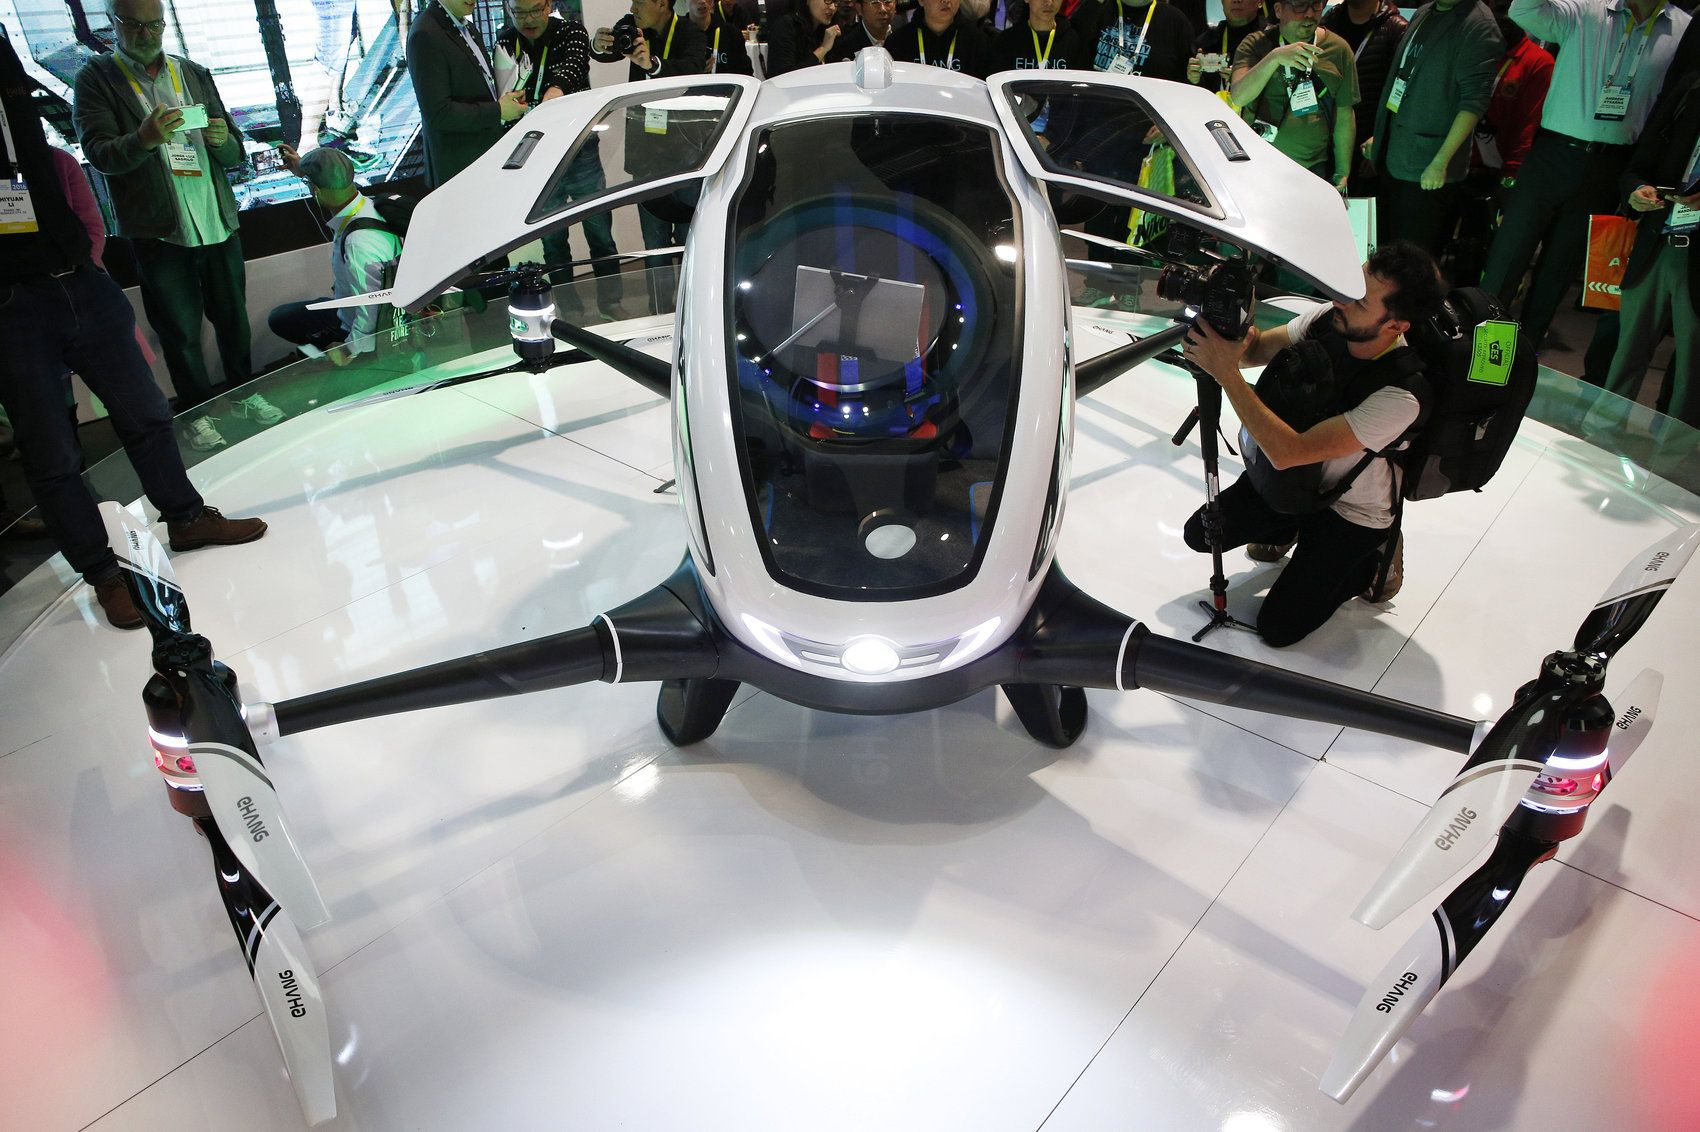 Worlds first passenger drone unveiled by Ehang at CES